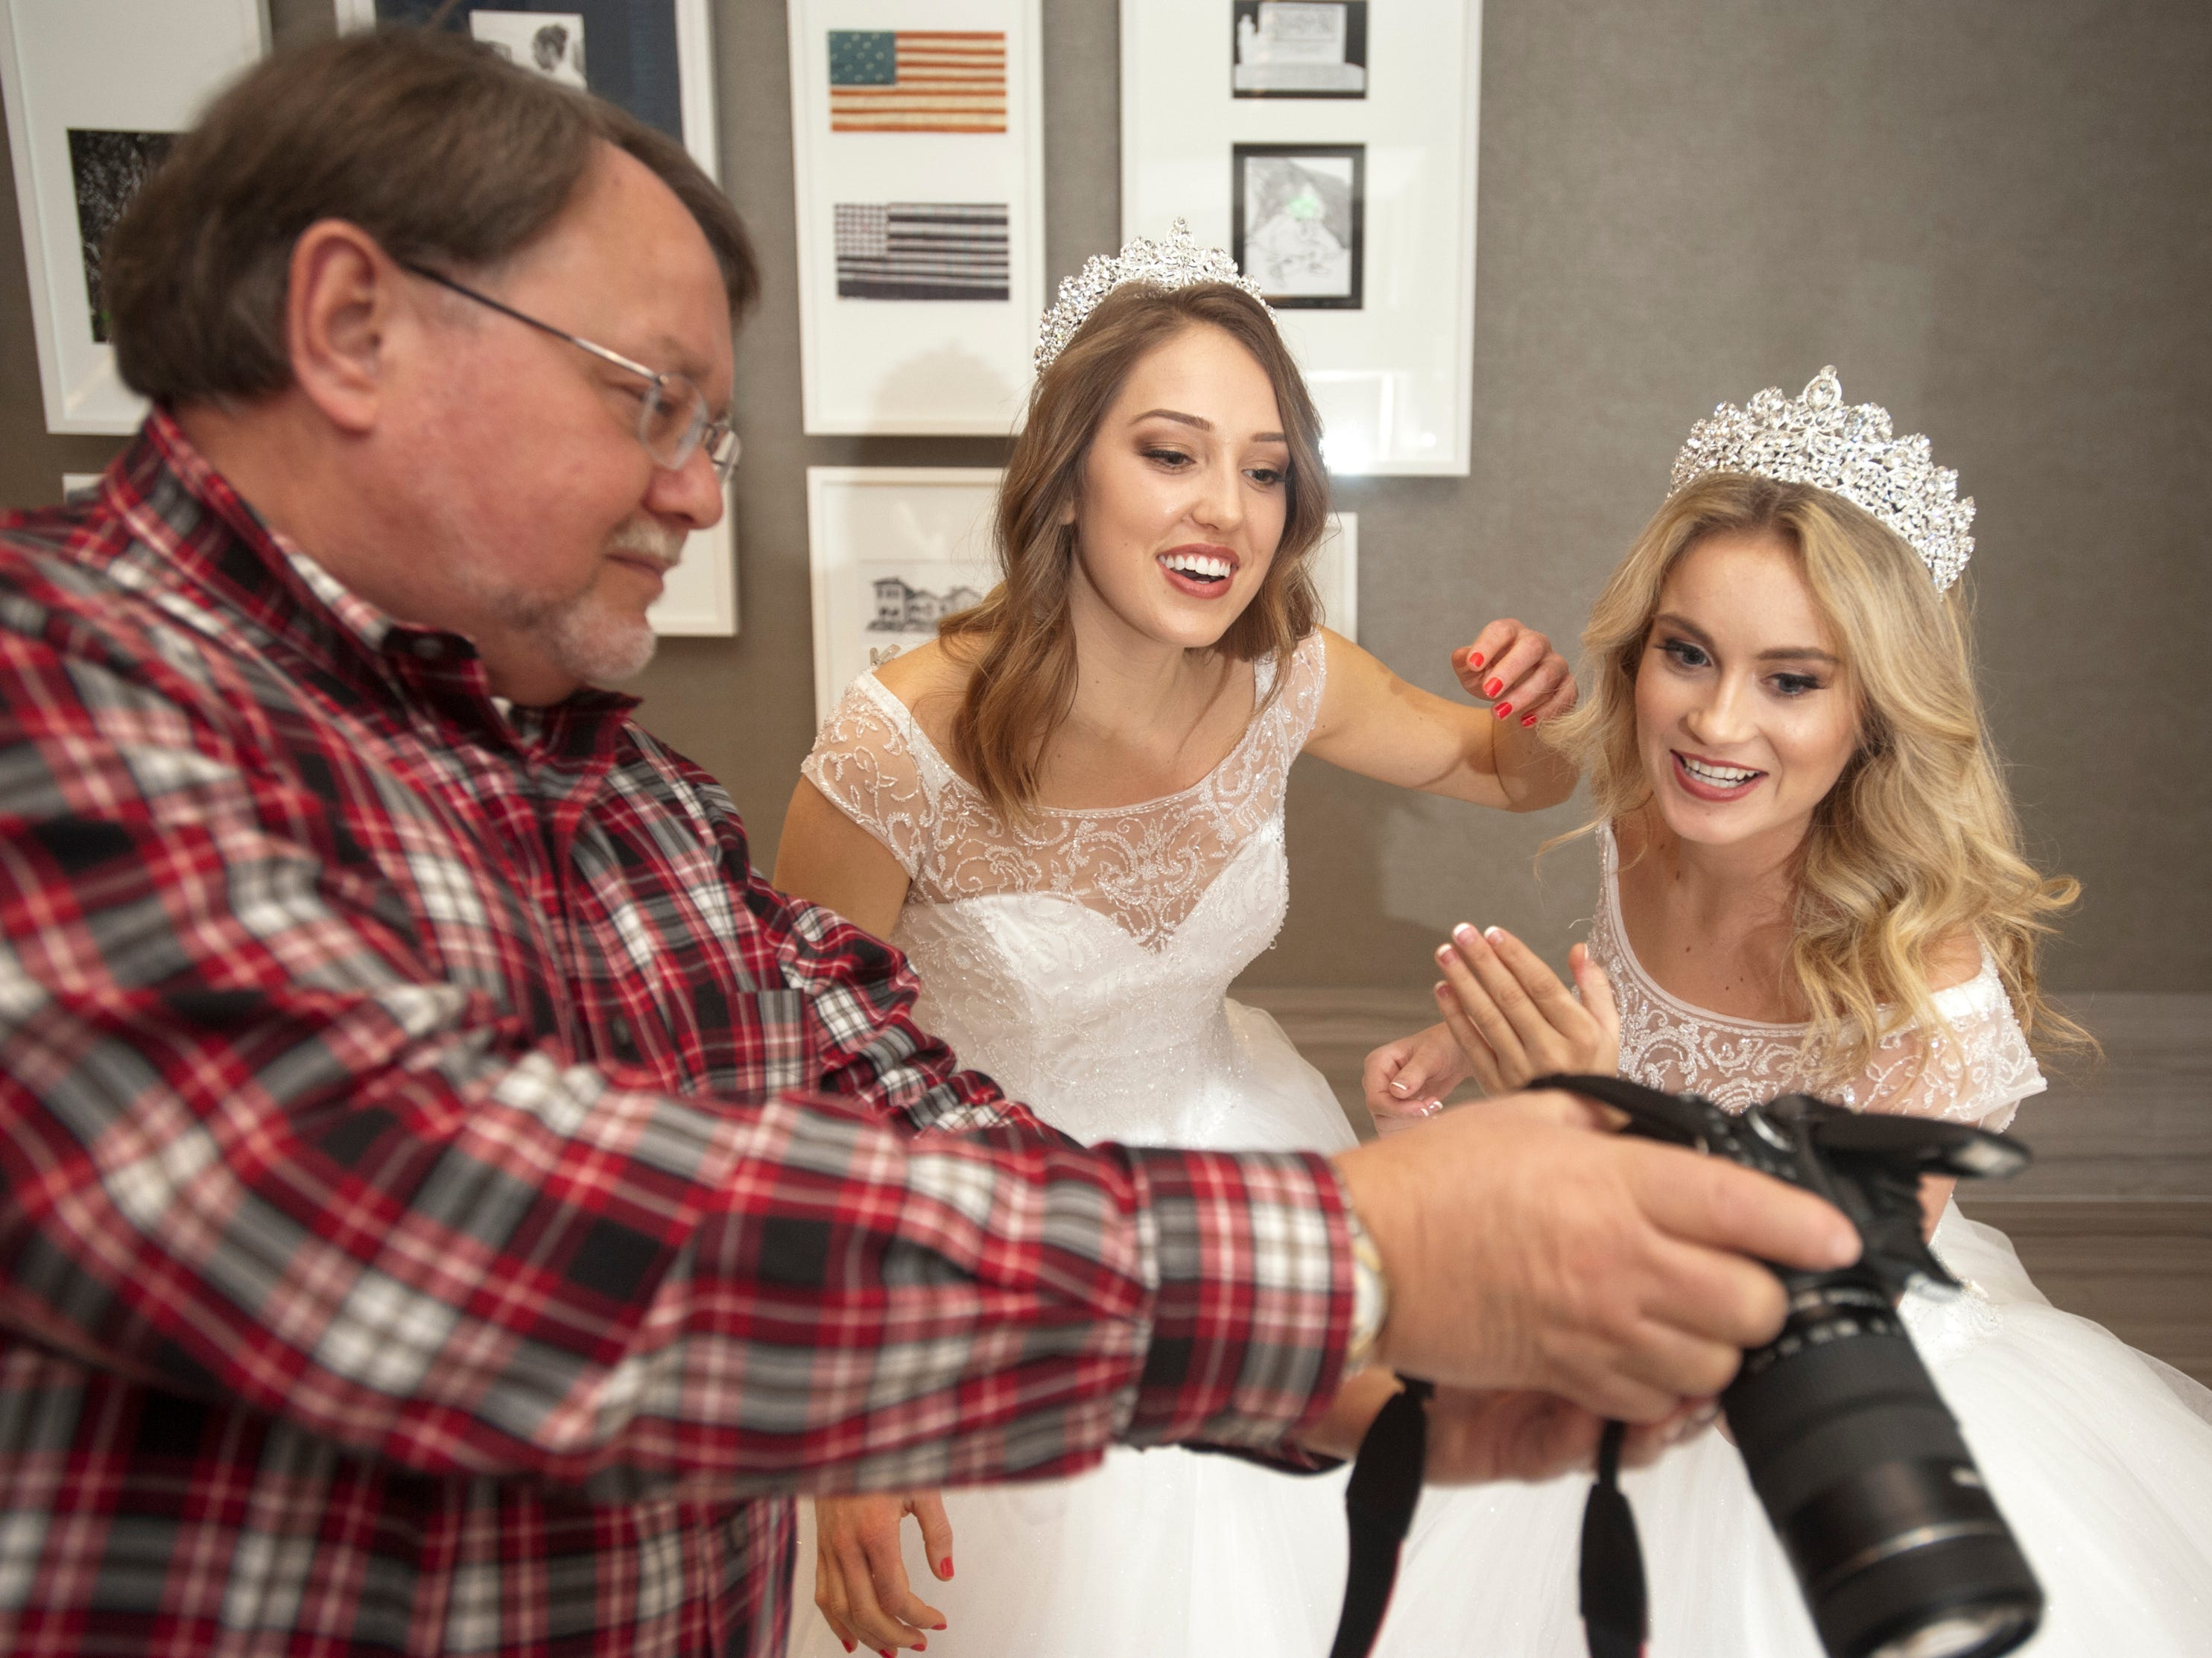 Elizabeth Seewer, center, and Allison Spears, right, look at a photo taken of them by Fillies President Debra Rayman's husband, Mitch.06 January 2019